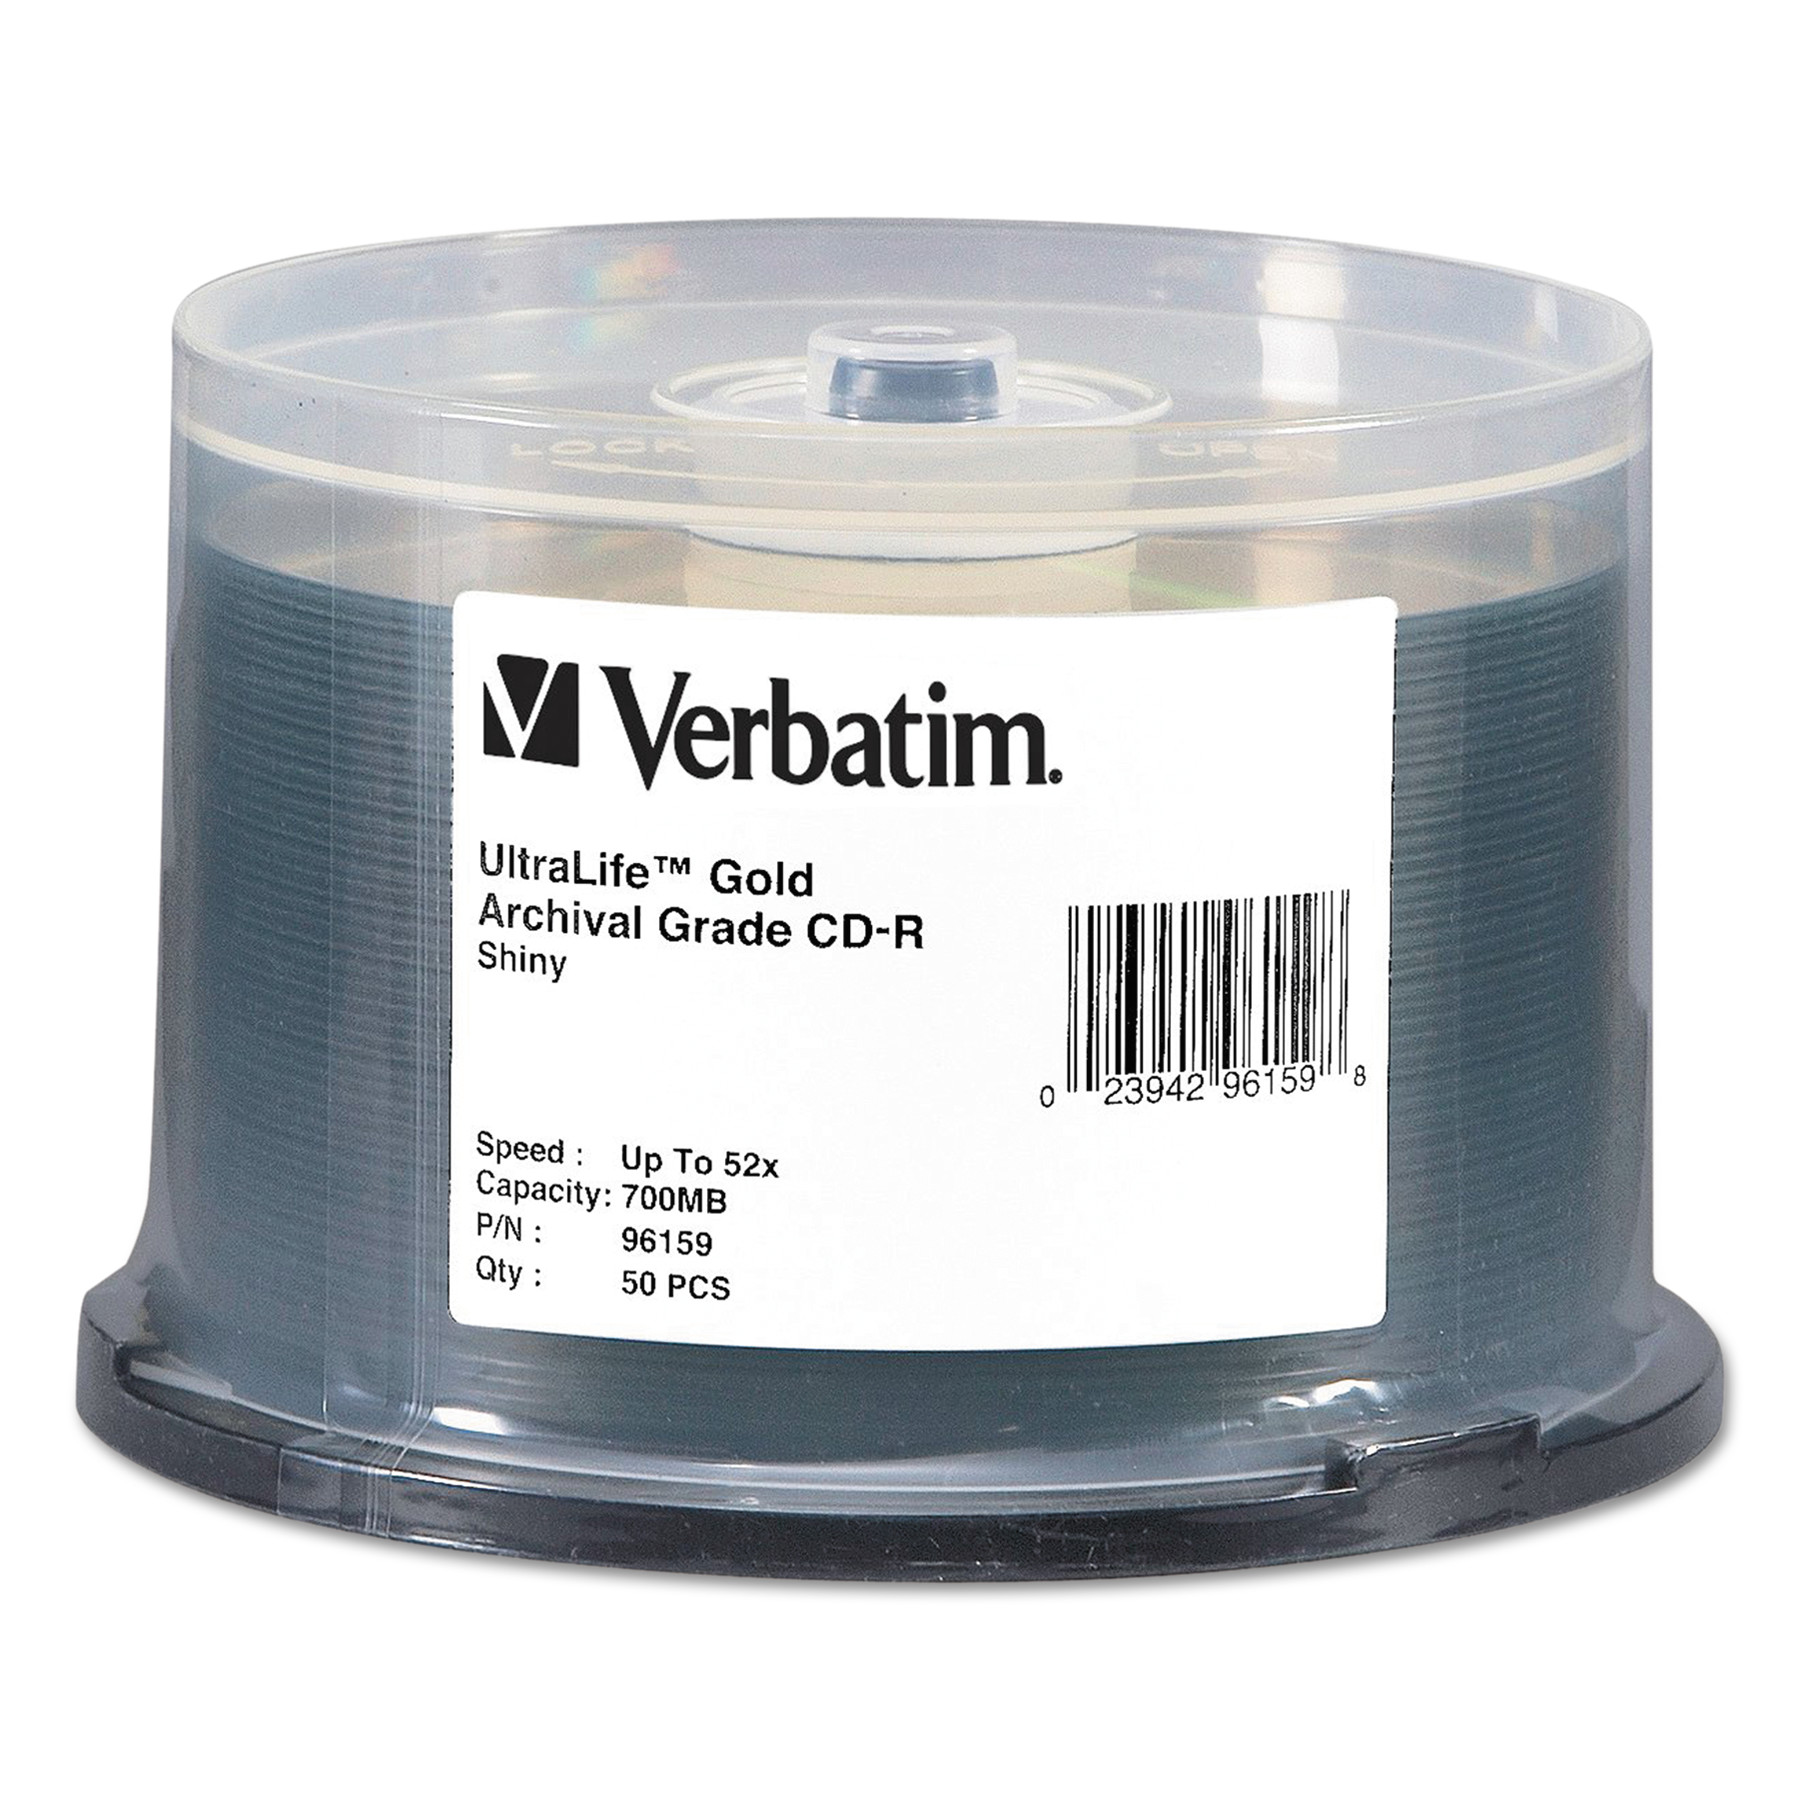 Verbatim UltraLife Gold Archival Grade CD-R w/Branded Surface 700MB 52X, 50/PK Spindle -VER96159